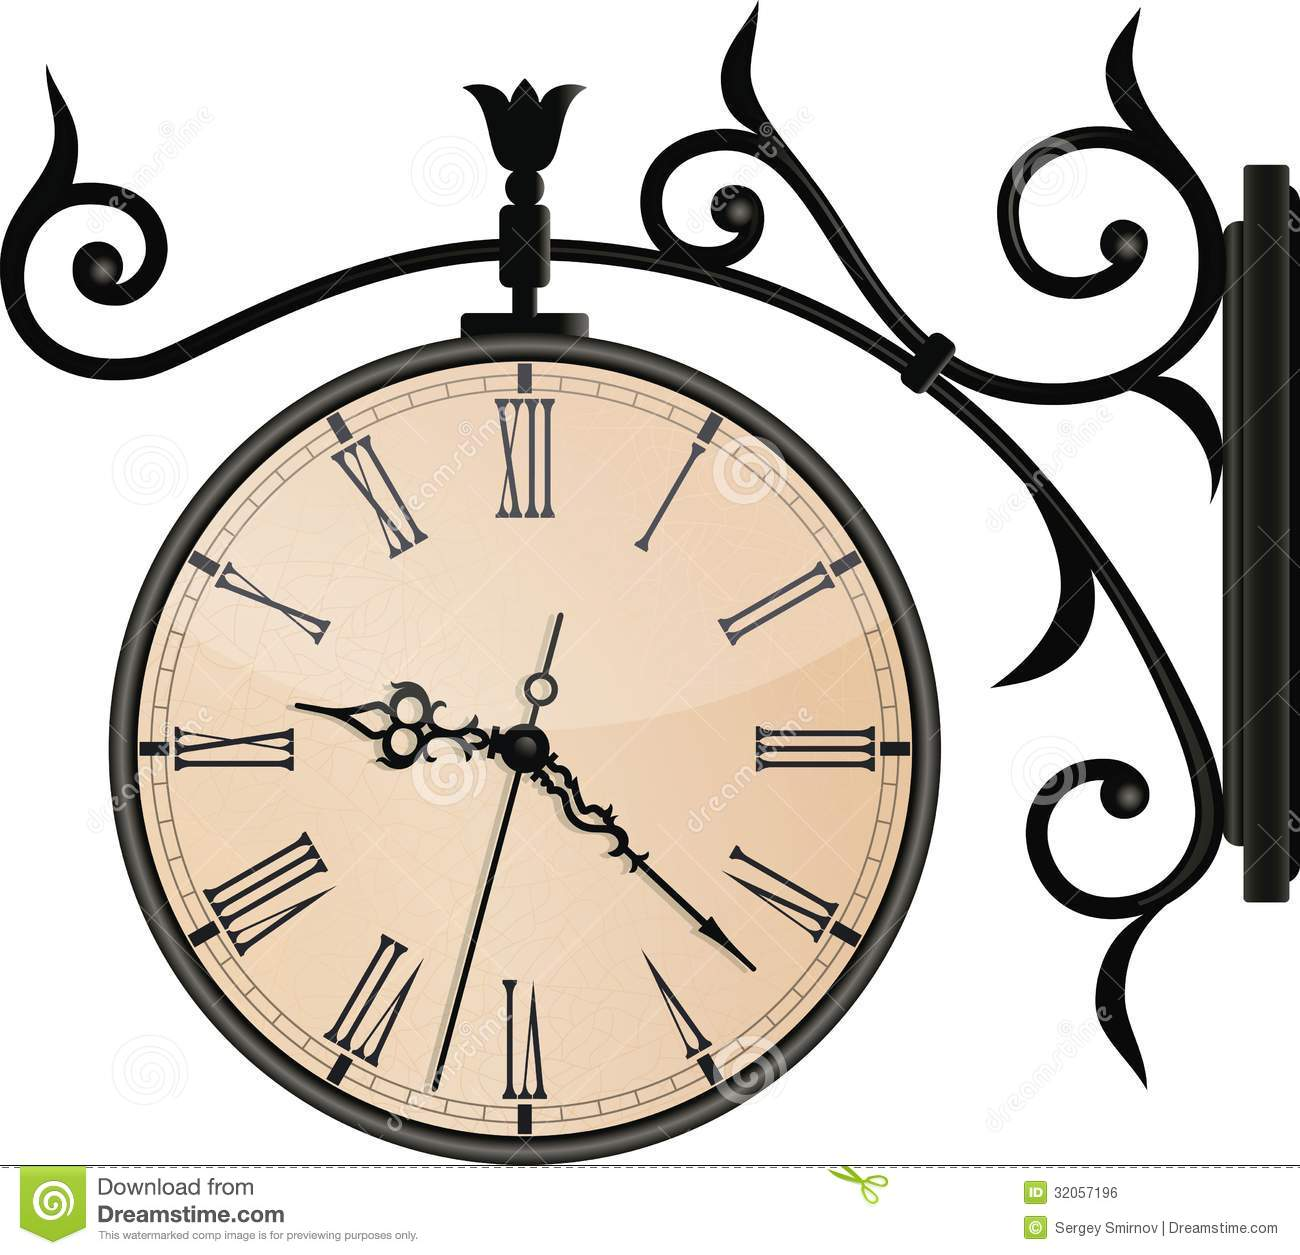 Vintage Street Clock Eps10 Royalty Free Stock Image